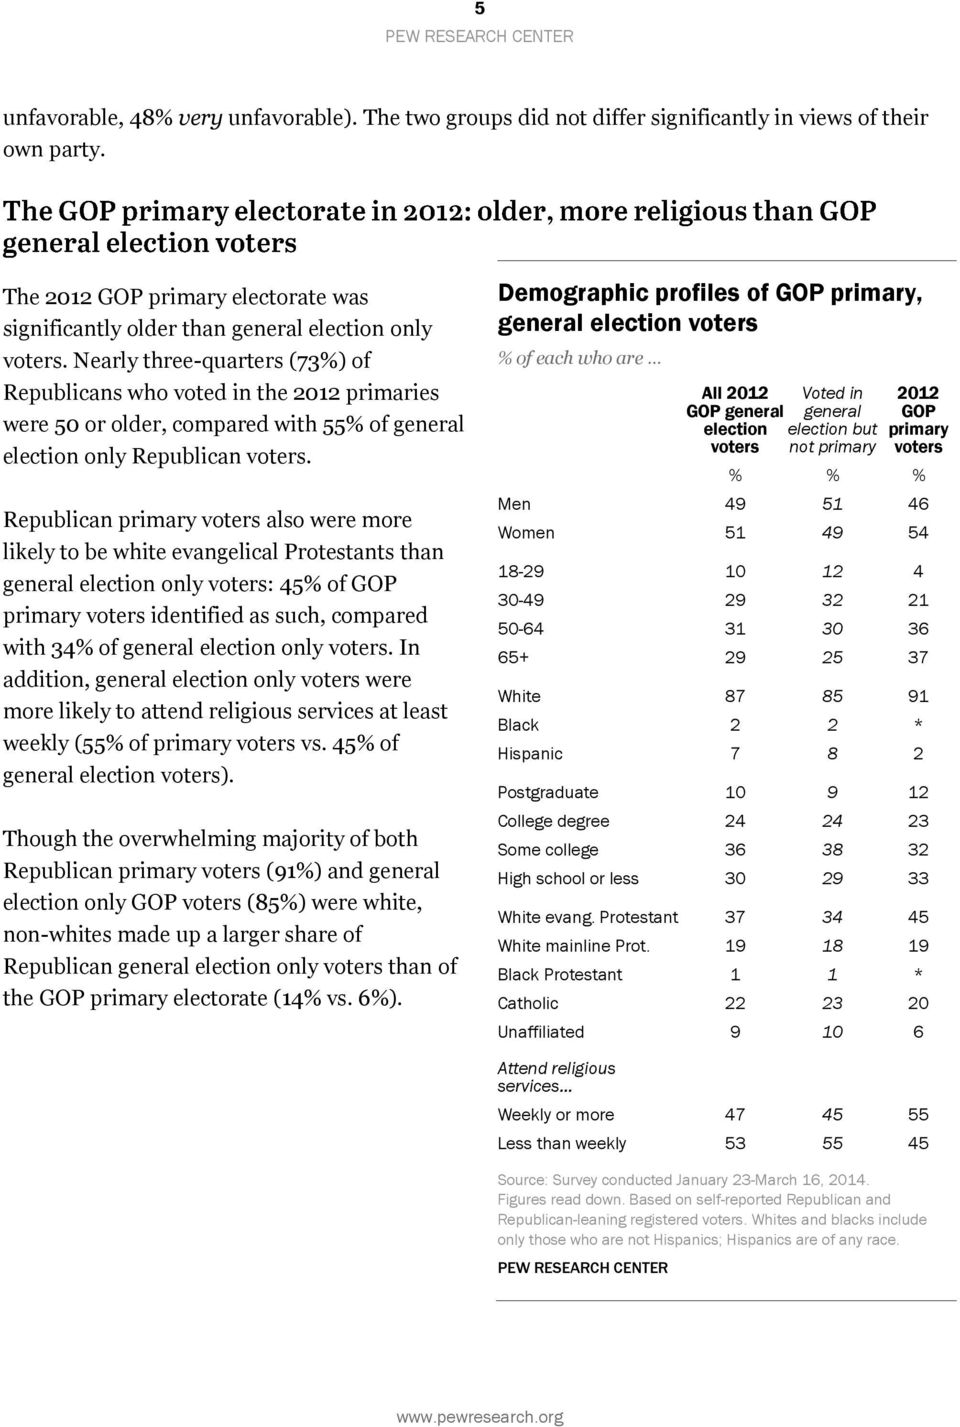 Republican primary also were more likely to be white evangelical Protestants than general election only : 45% of GOP primary identified as such, compared with 34% of general election only.